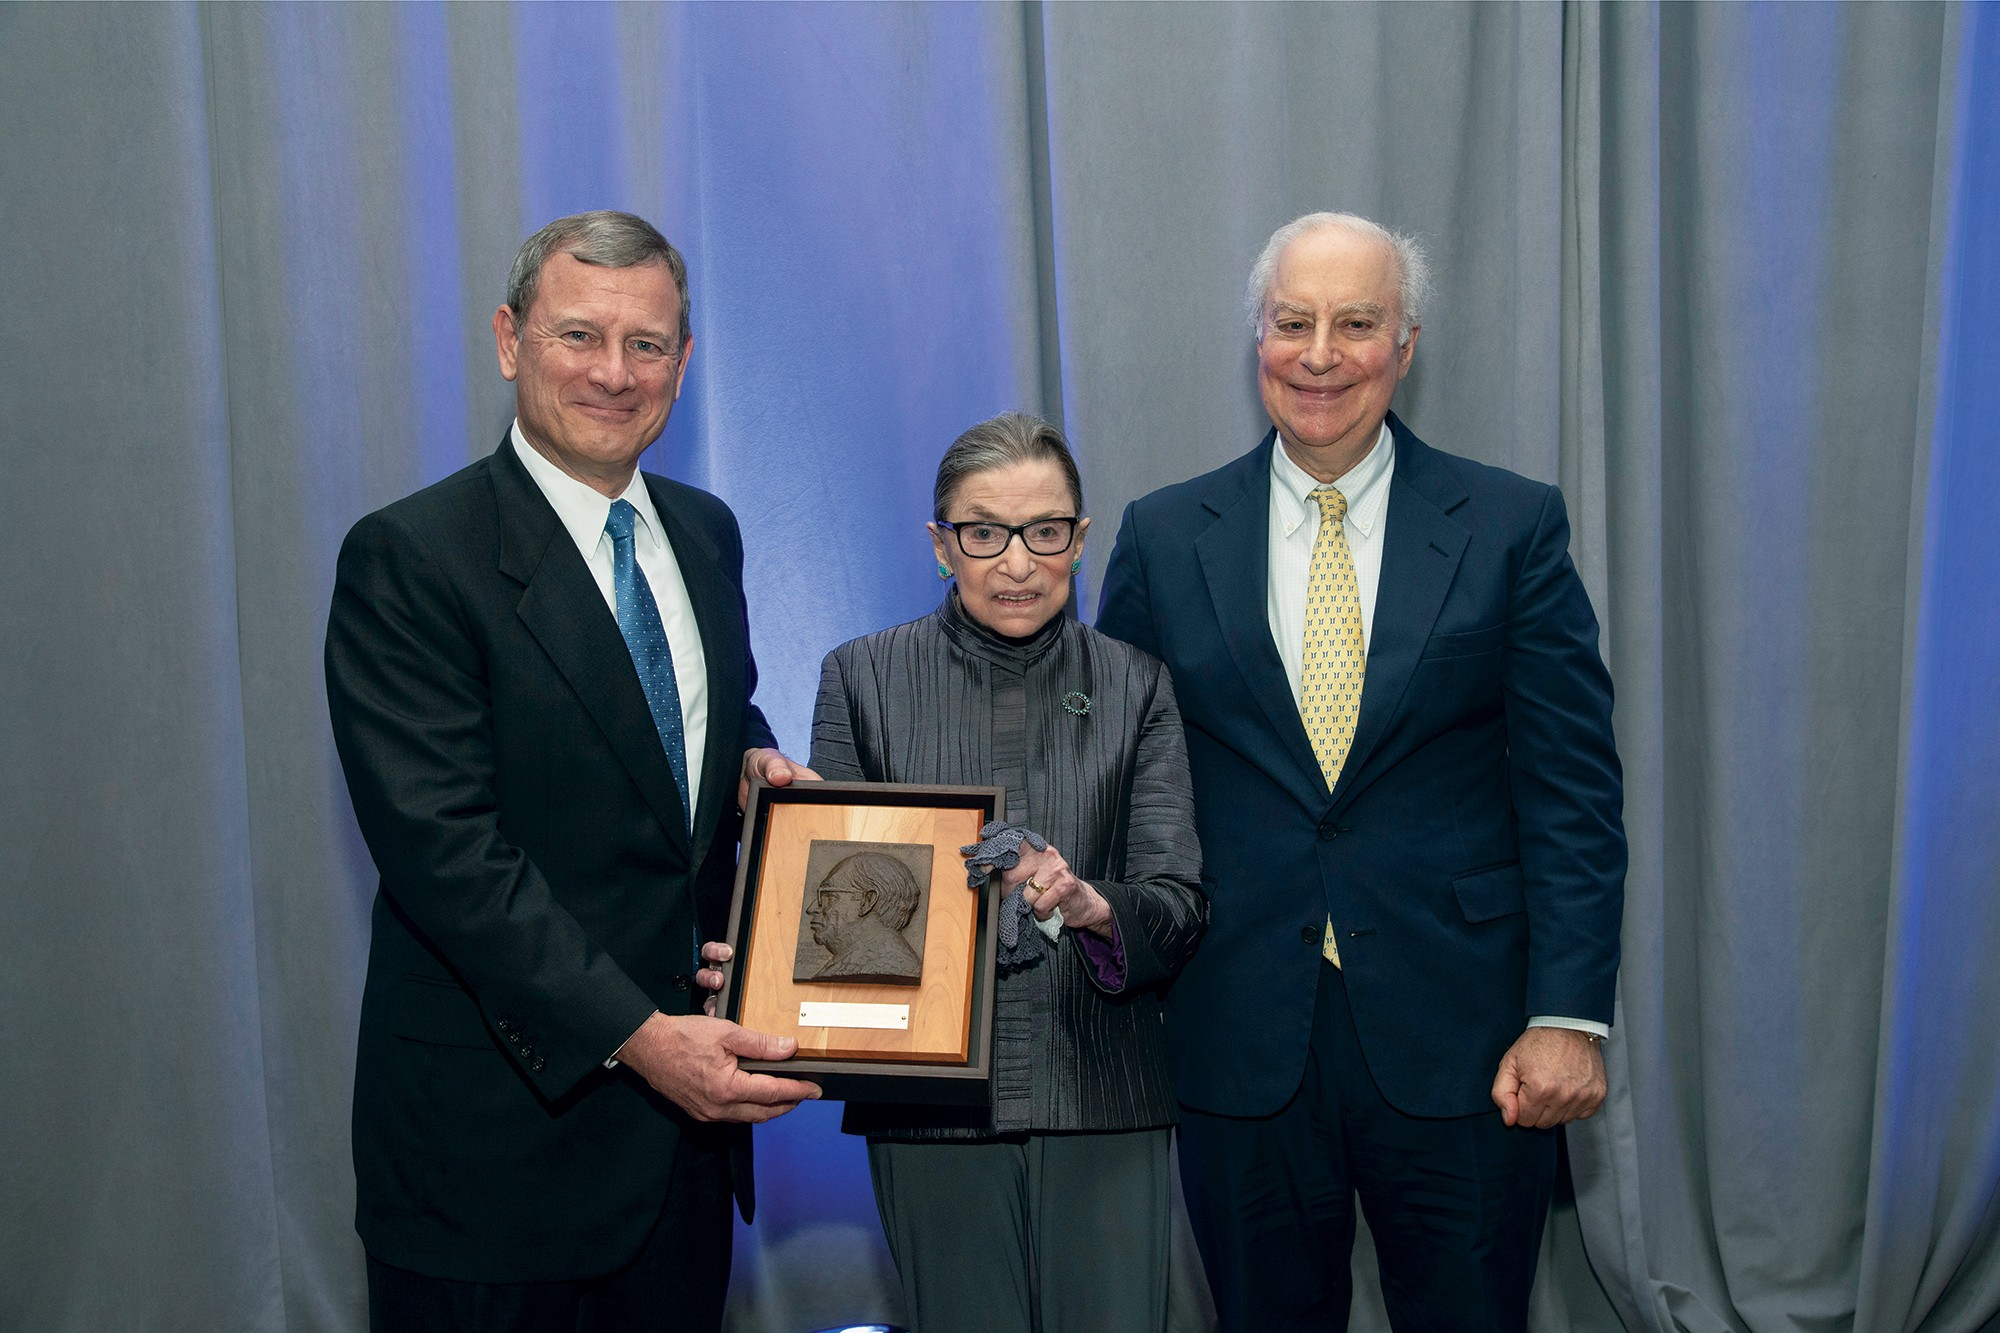 Picture of Chief Justice Roberts, Justice Ginsburg, and David F. Levi holding an award